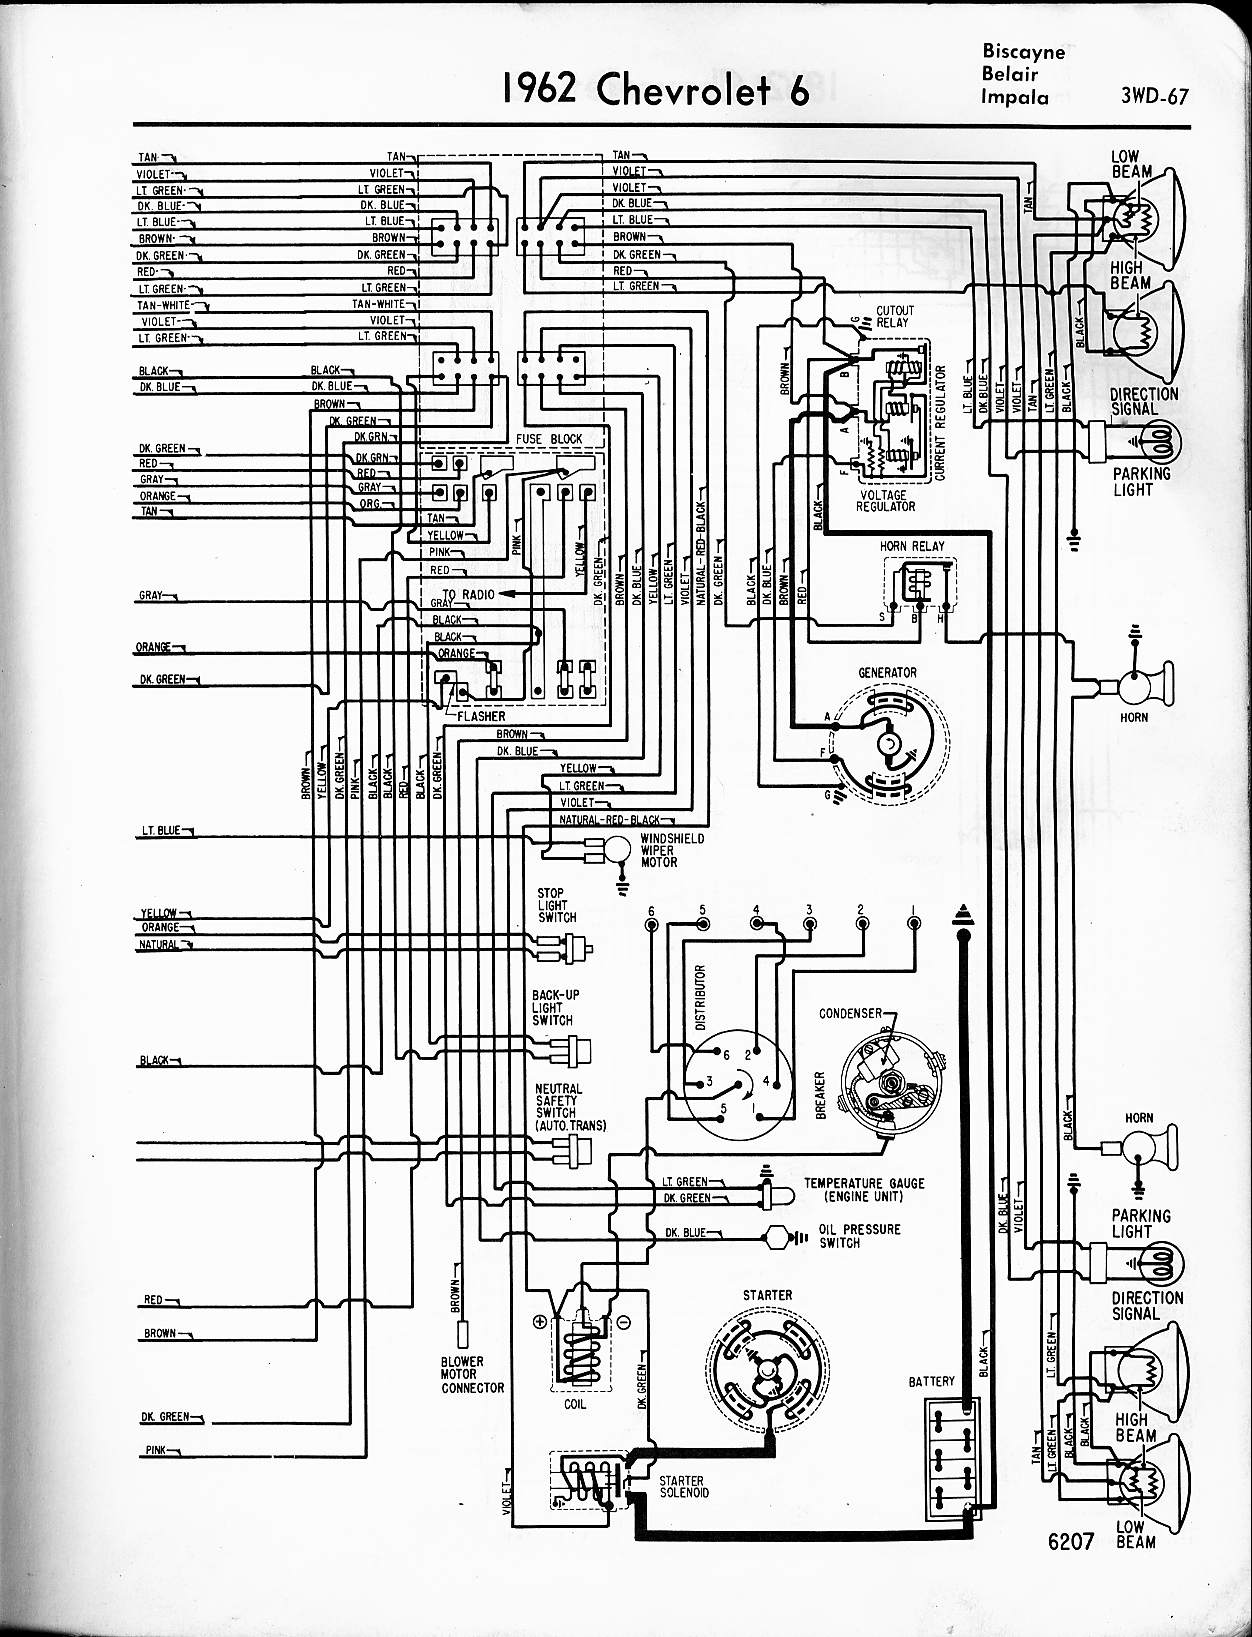 1048421 In Need Of A Readable Wiring Diagram as well Wiring further 328ha 1955 F100 Anybody A 472 72 Caddy Eldorado Im Wiring moreover Showthread likewise Showthread. on 1955 chevy turn signal wiring diagram